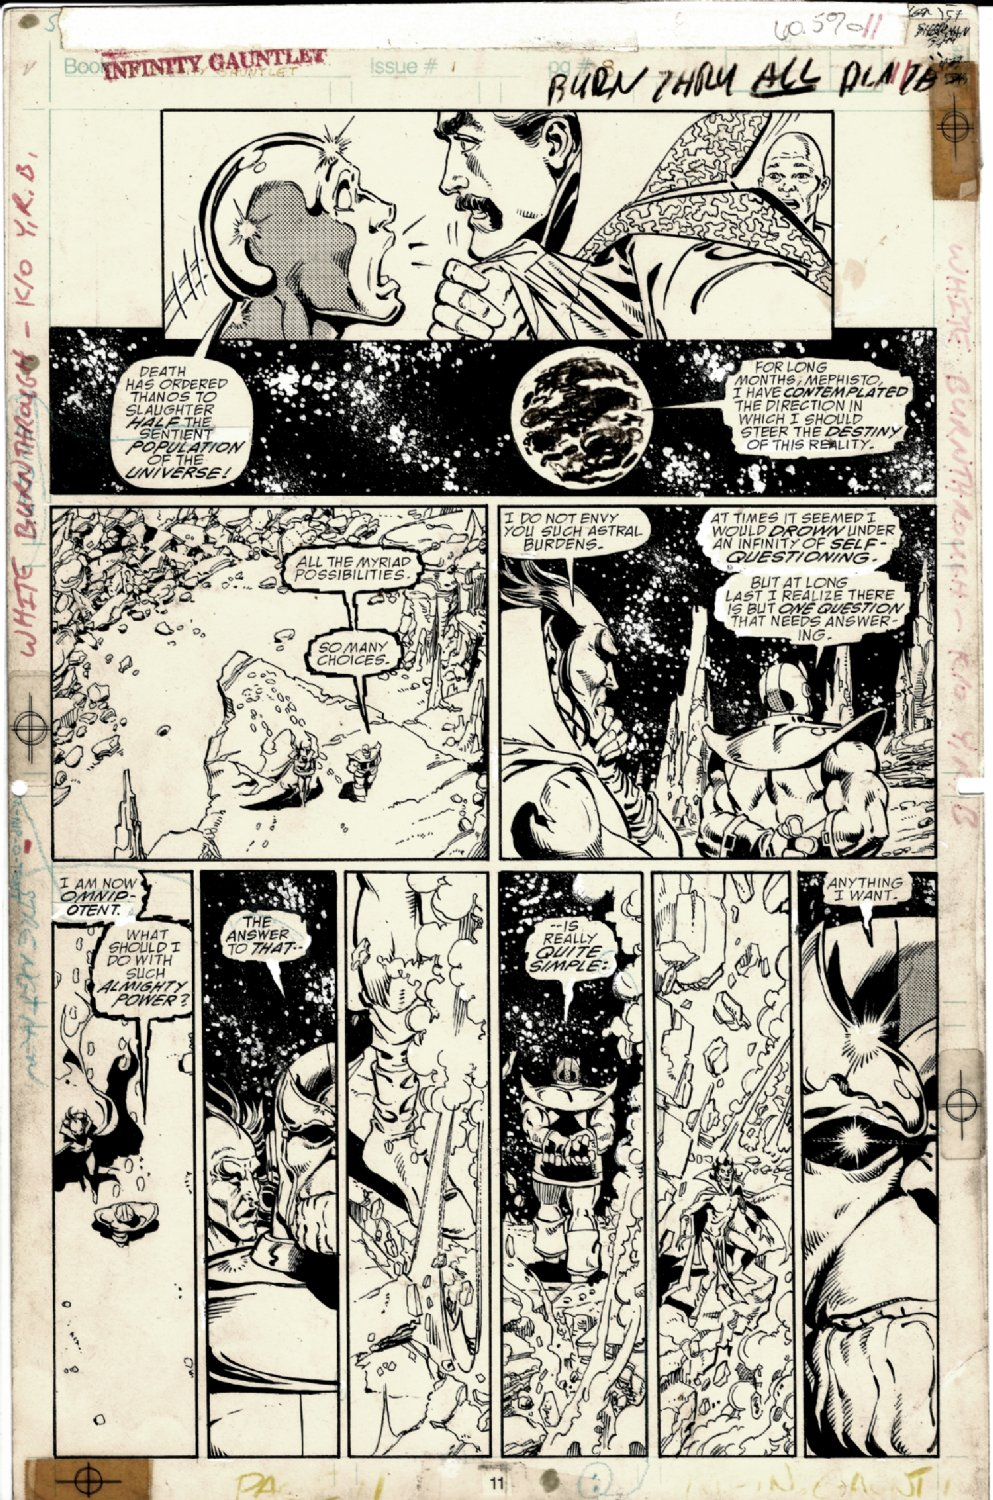 Infinity Gauntlet #1 p 11 (ICONIC PAGE! THANOS TELLS MEPHISTO HIS PLAN TO EXTERMINATE HALF THE UNIVERSE! SILVER SURFER & DR STRANGE!) 1991